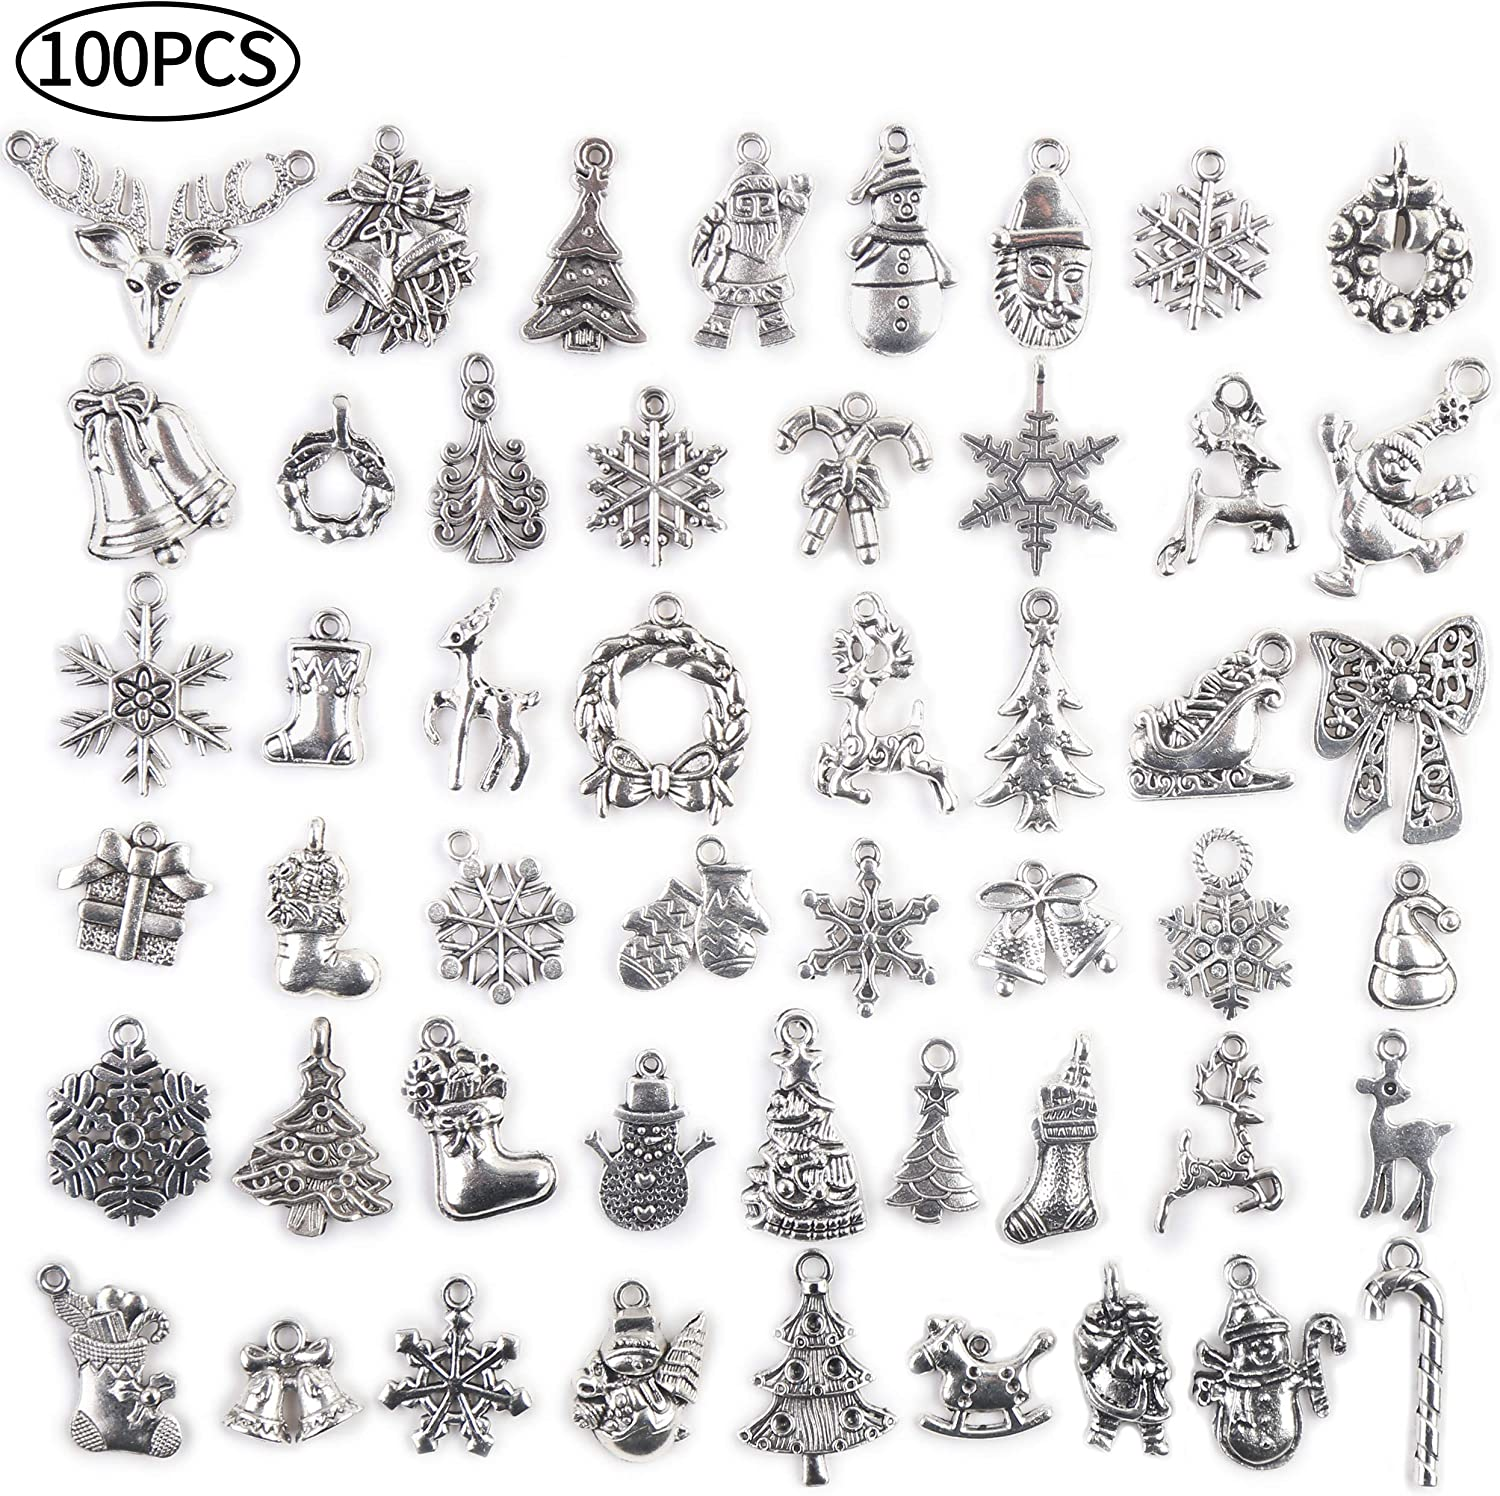 CCINEE 100 PCS Christmas Antique Tibetan Silver Charms, Wholesale Mixed Metal Bulk Pendants DIY Charms for Necklace Bracelet Making